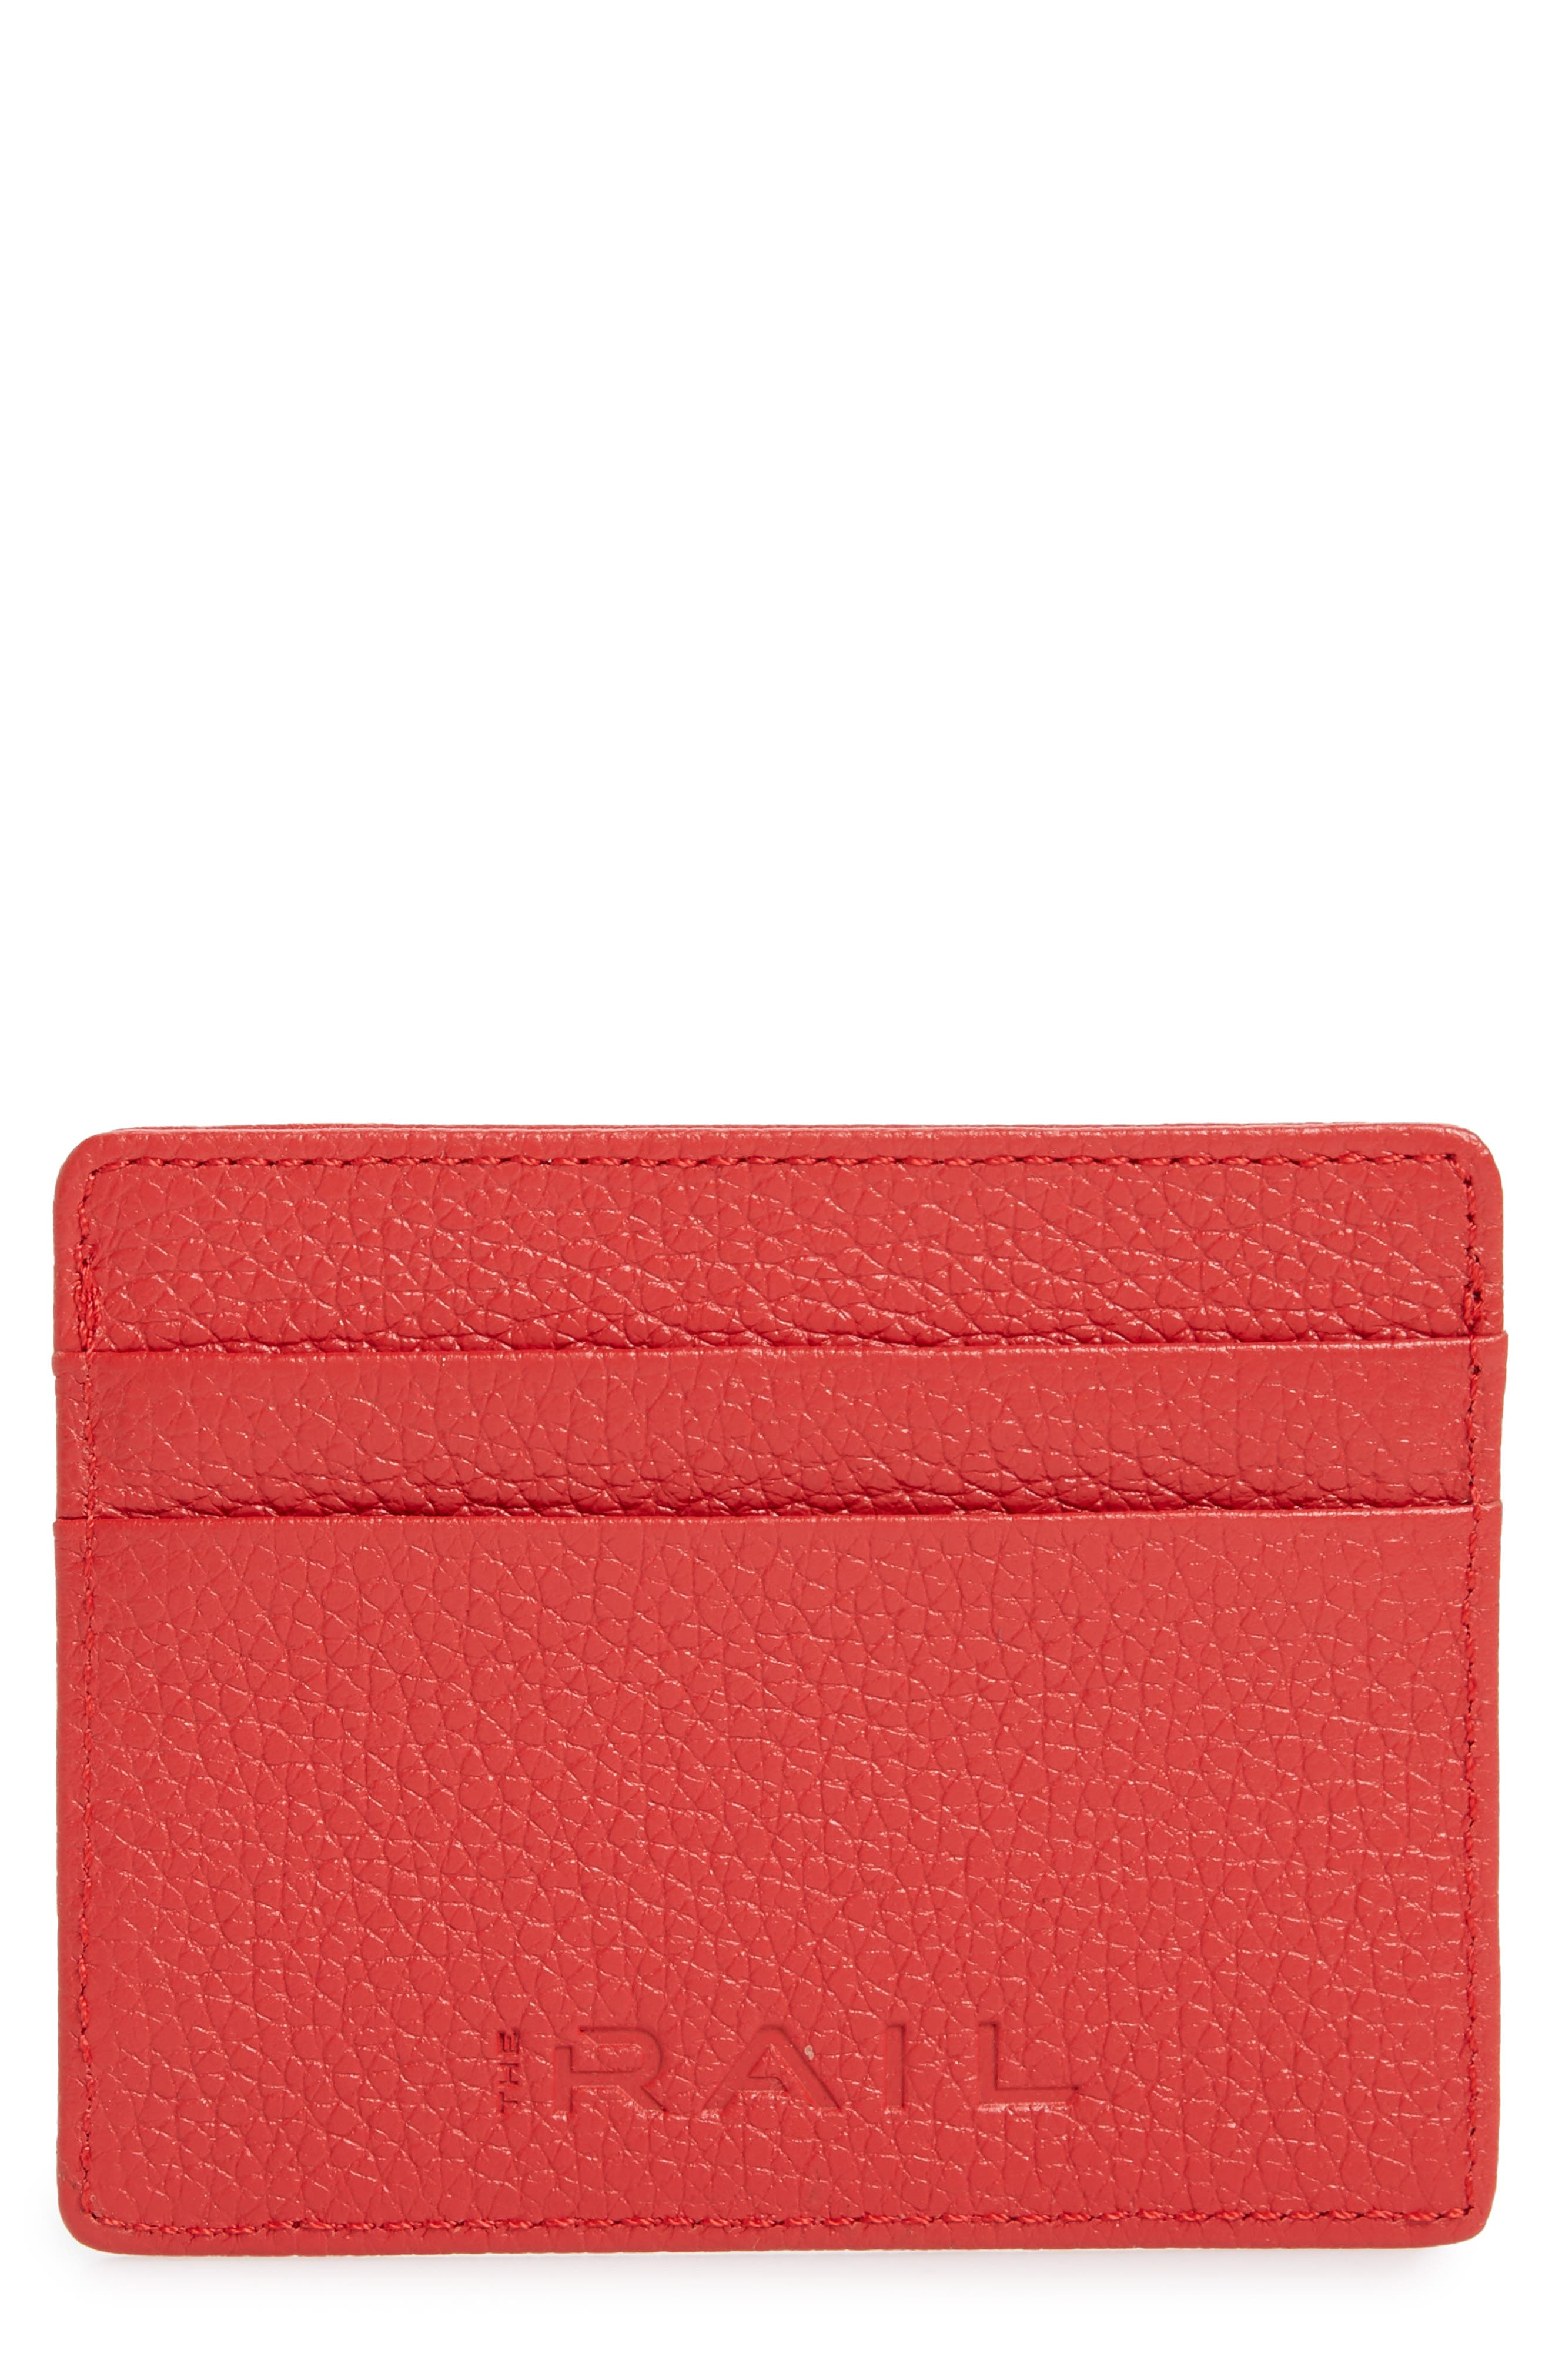 ,                             Jamie Leather Card Case,                             Main thumbnail 53, color,                             610